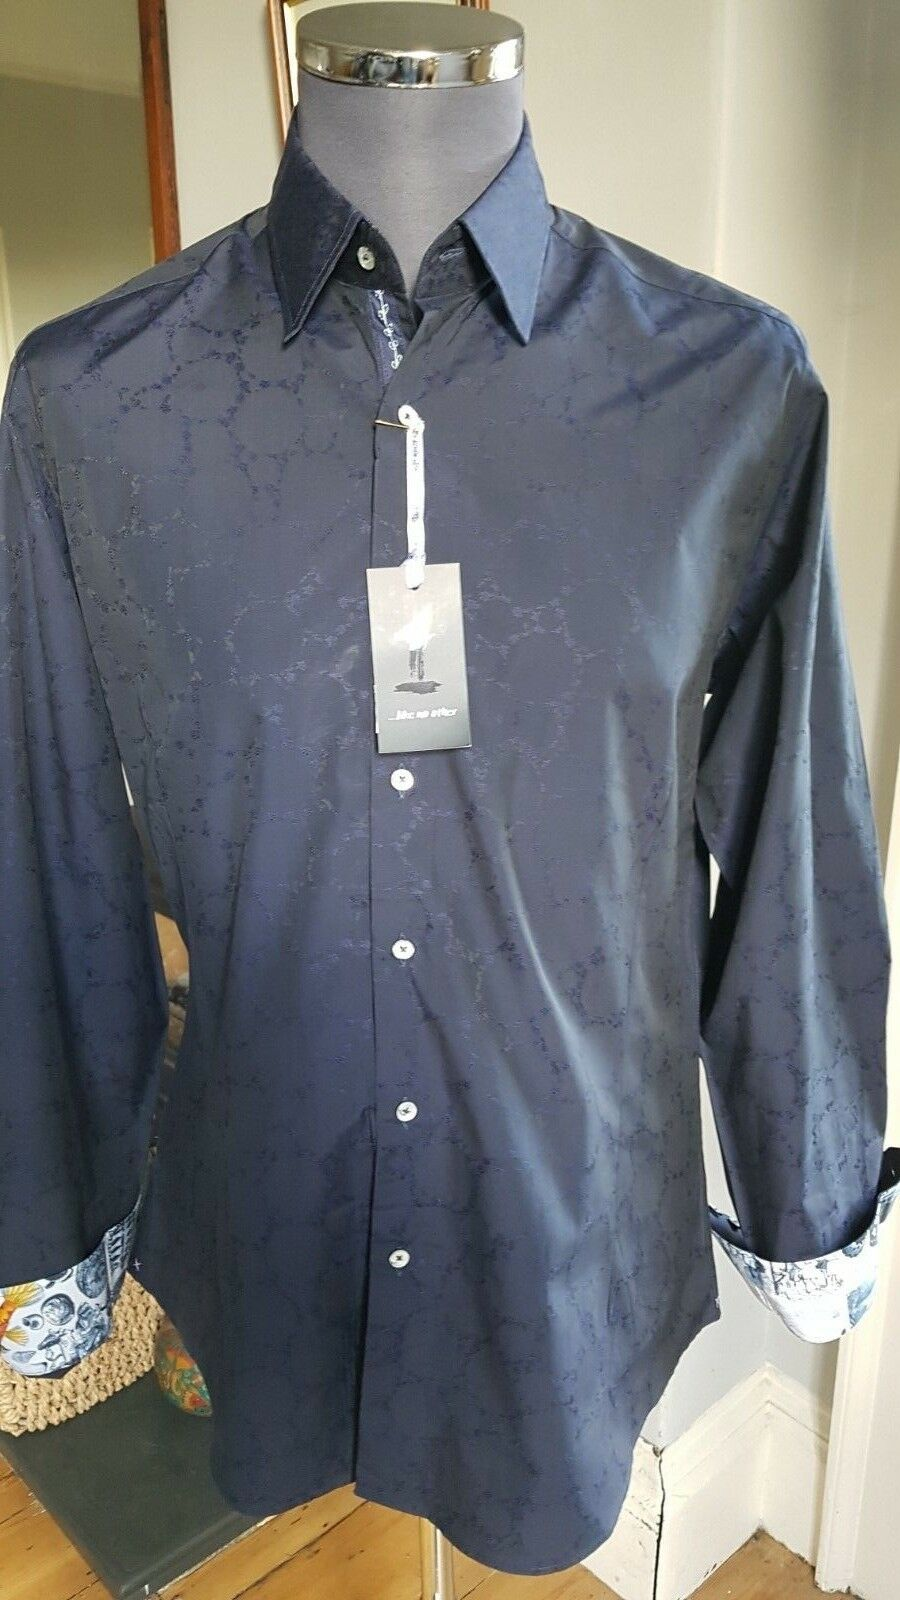 1 Like No Other men's slim fit shirt in Navy. Size 3 L. RRP . 1 of 500.